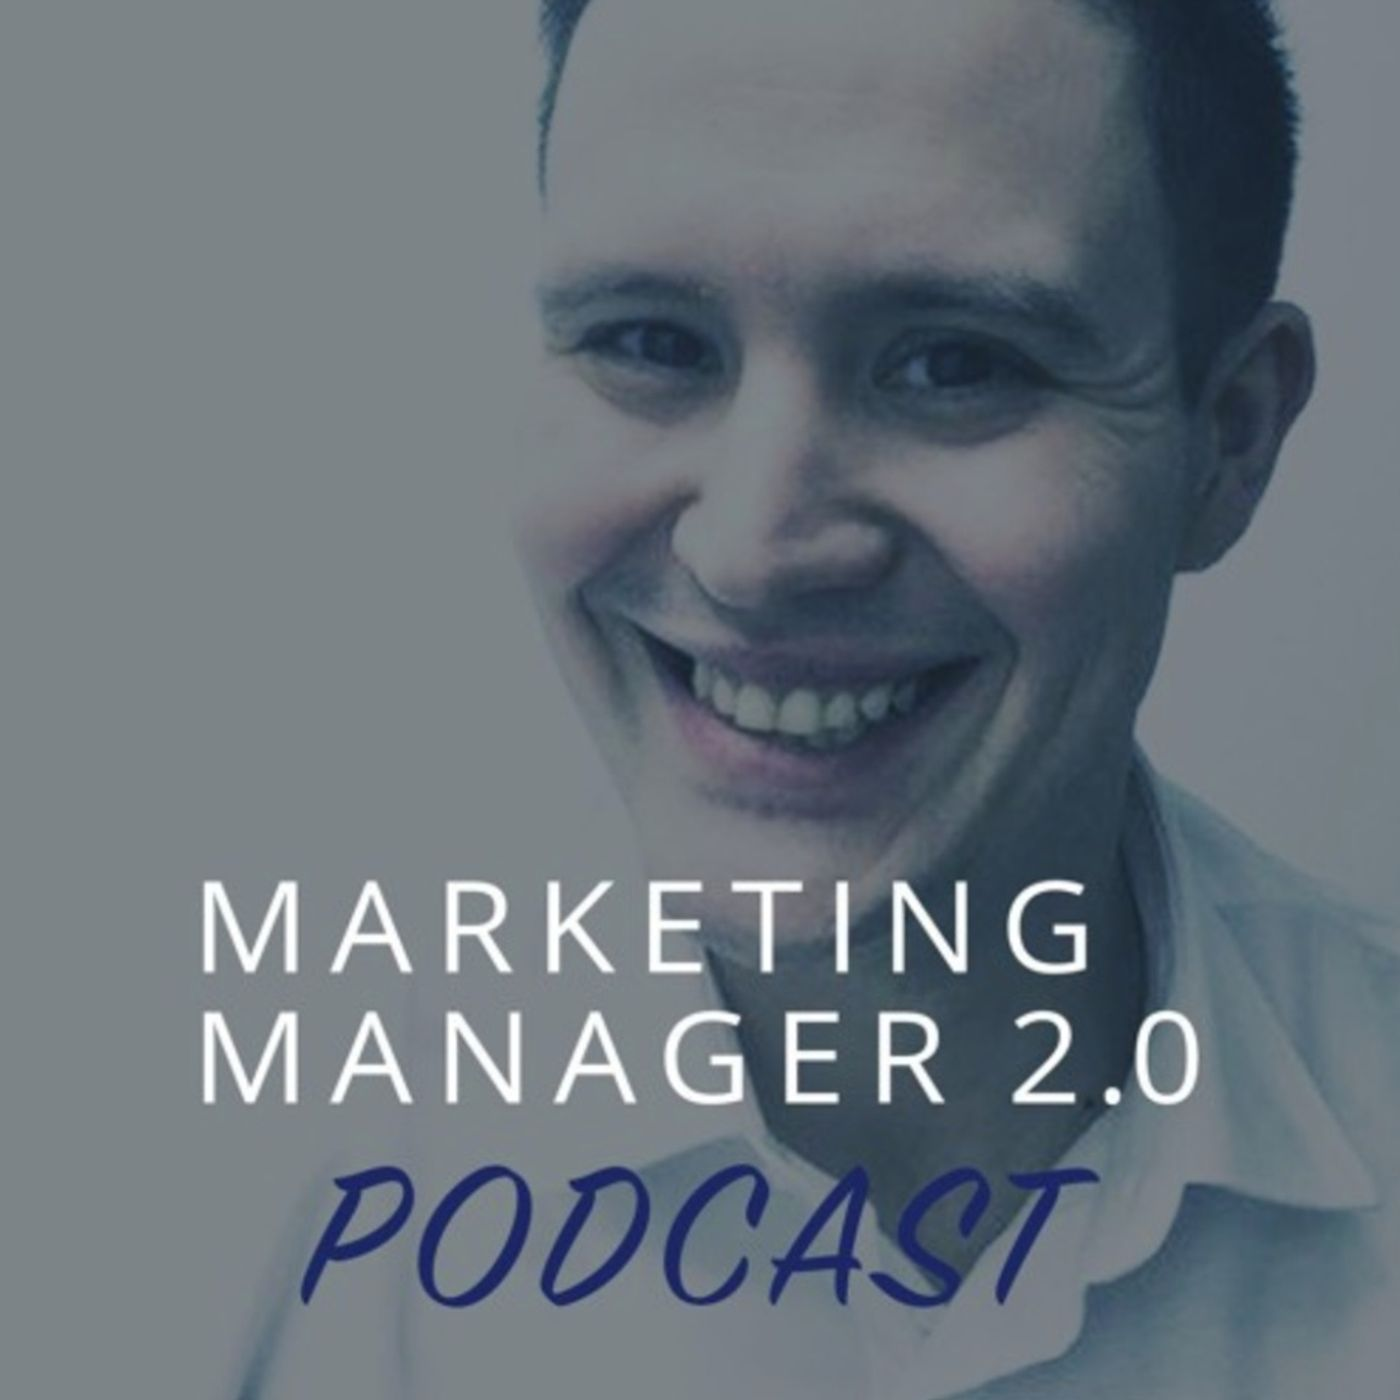 Marketing Manager 2.0 podcast